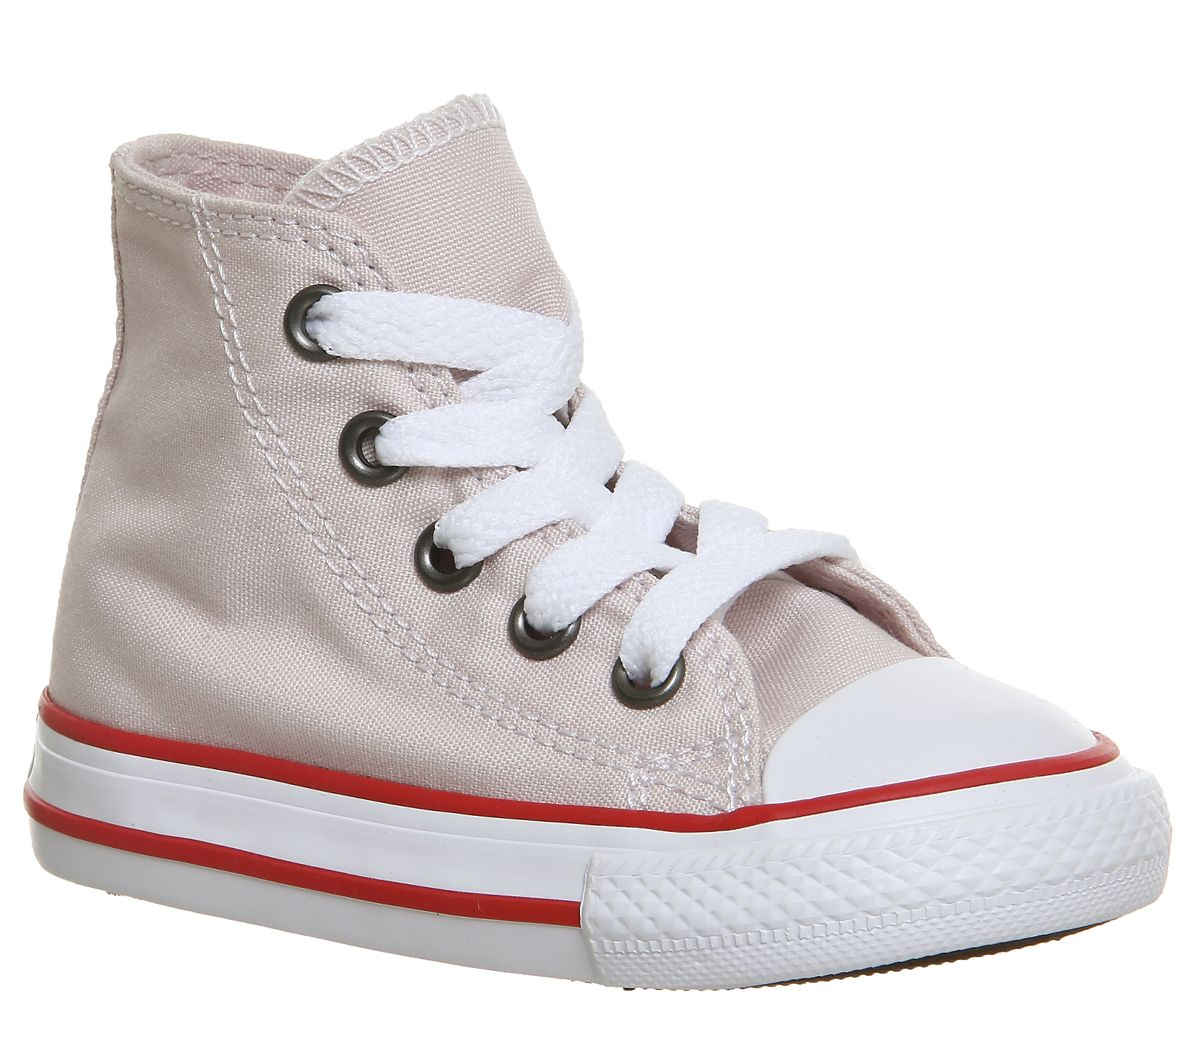 adcc16d377e9 Converse Small Star Hi Canvas Barely Rose Enamel Red - Unisex